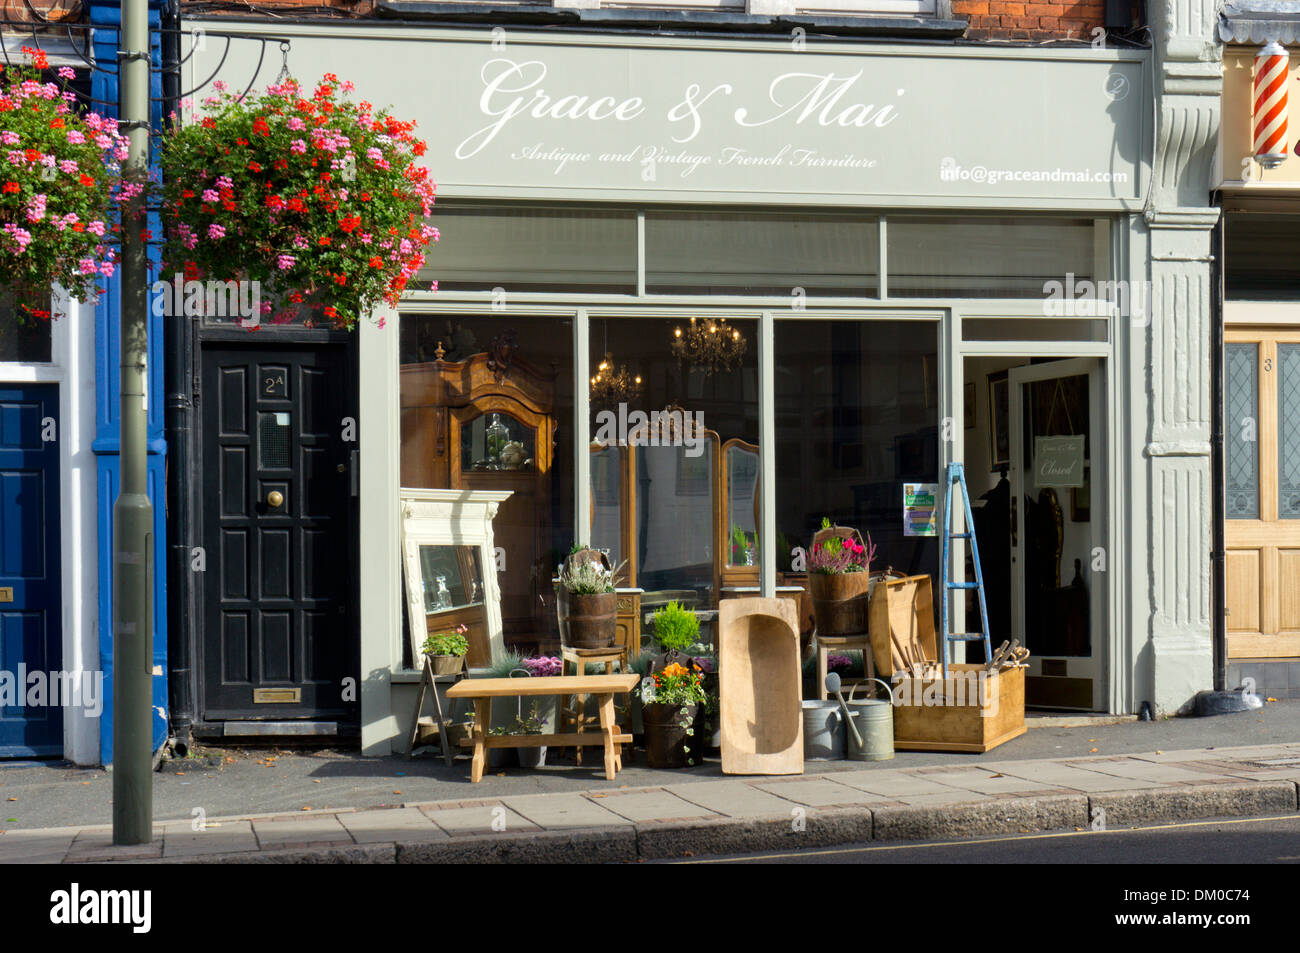 Furniture on the pavement outside the shop of Grace & Mai Antique and Vintage French Furniture in Sundridge Park, Kent. - Stock Image